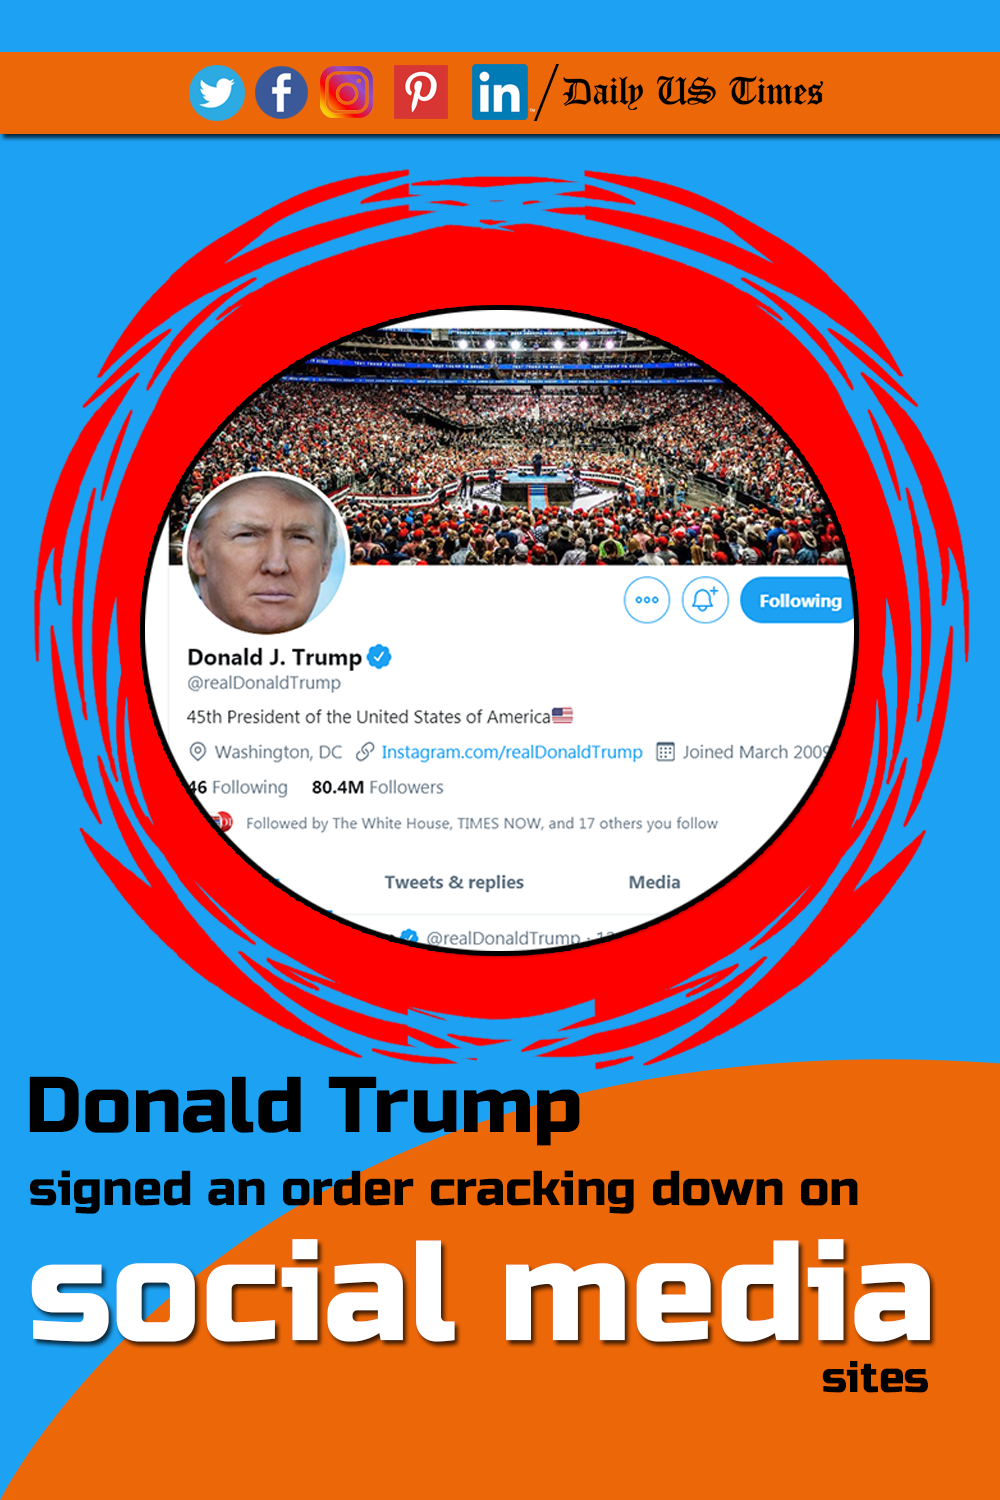 Angered by Twitter's moves to fact-check him, President Donald Trump signed an order cracking down on social media sites. It is unclear if it is enforceable.  #PresidentTrump #DonaldTrump #Facebook #Google #Twitter #USA #US #FactCheck #CrackingDown #SocialMedia #ExecutiveOrder #SiliconValley #LegalChallenge #WhiteHouse